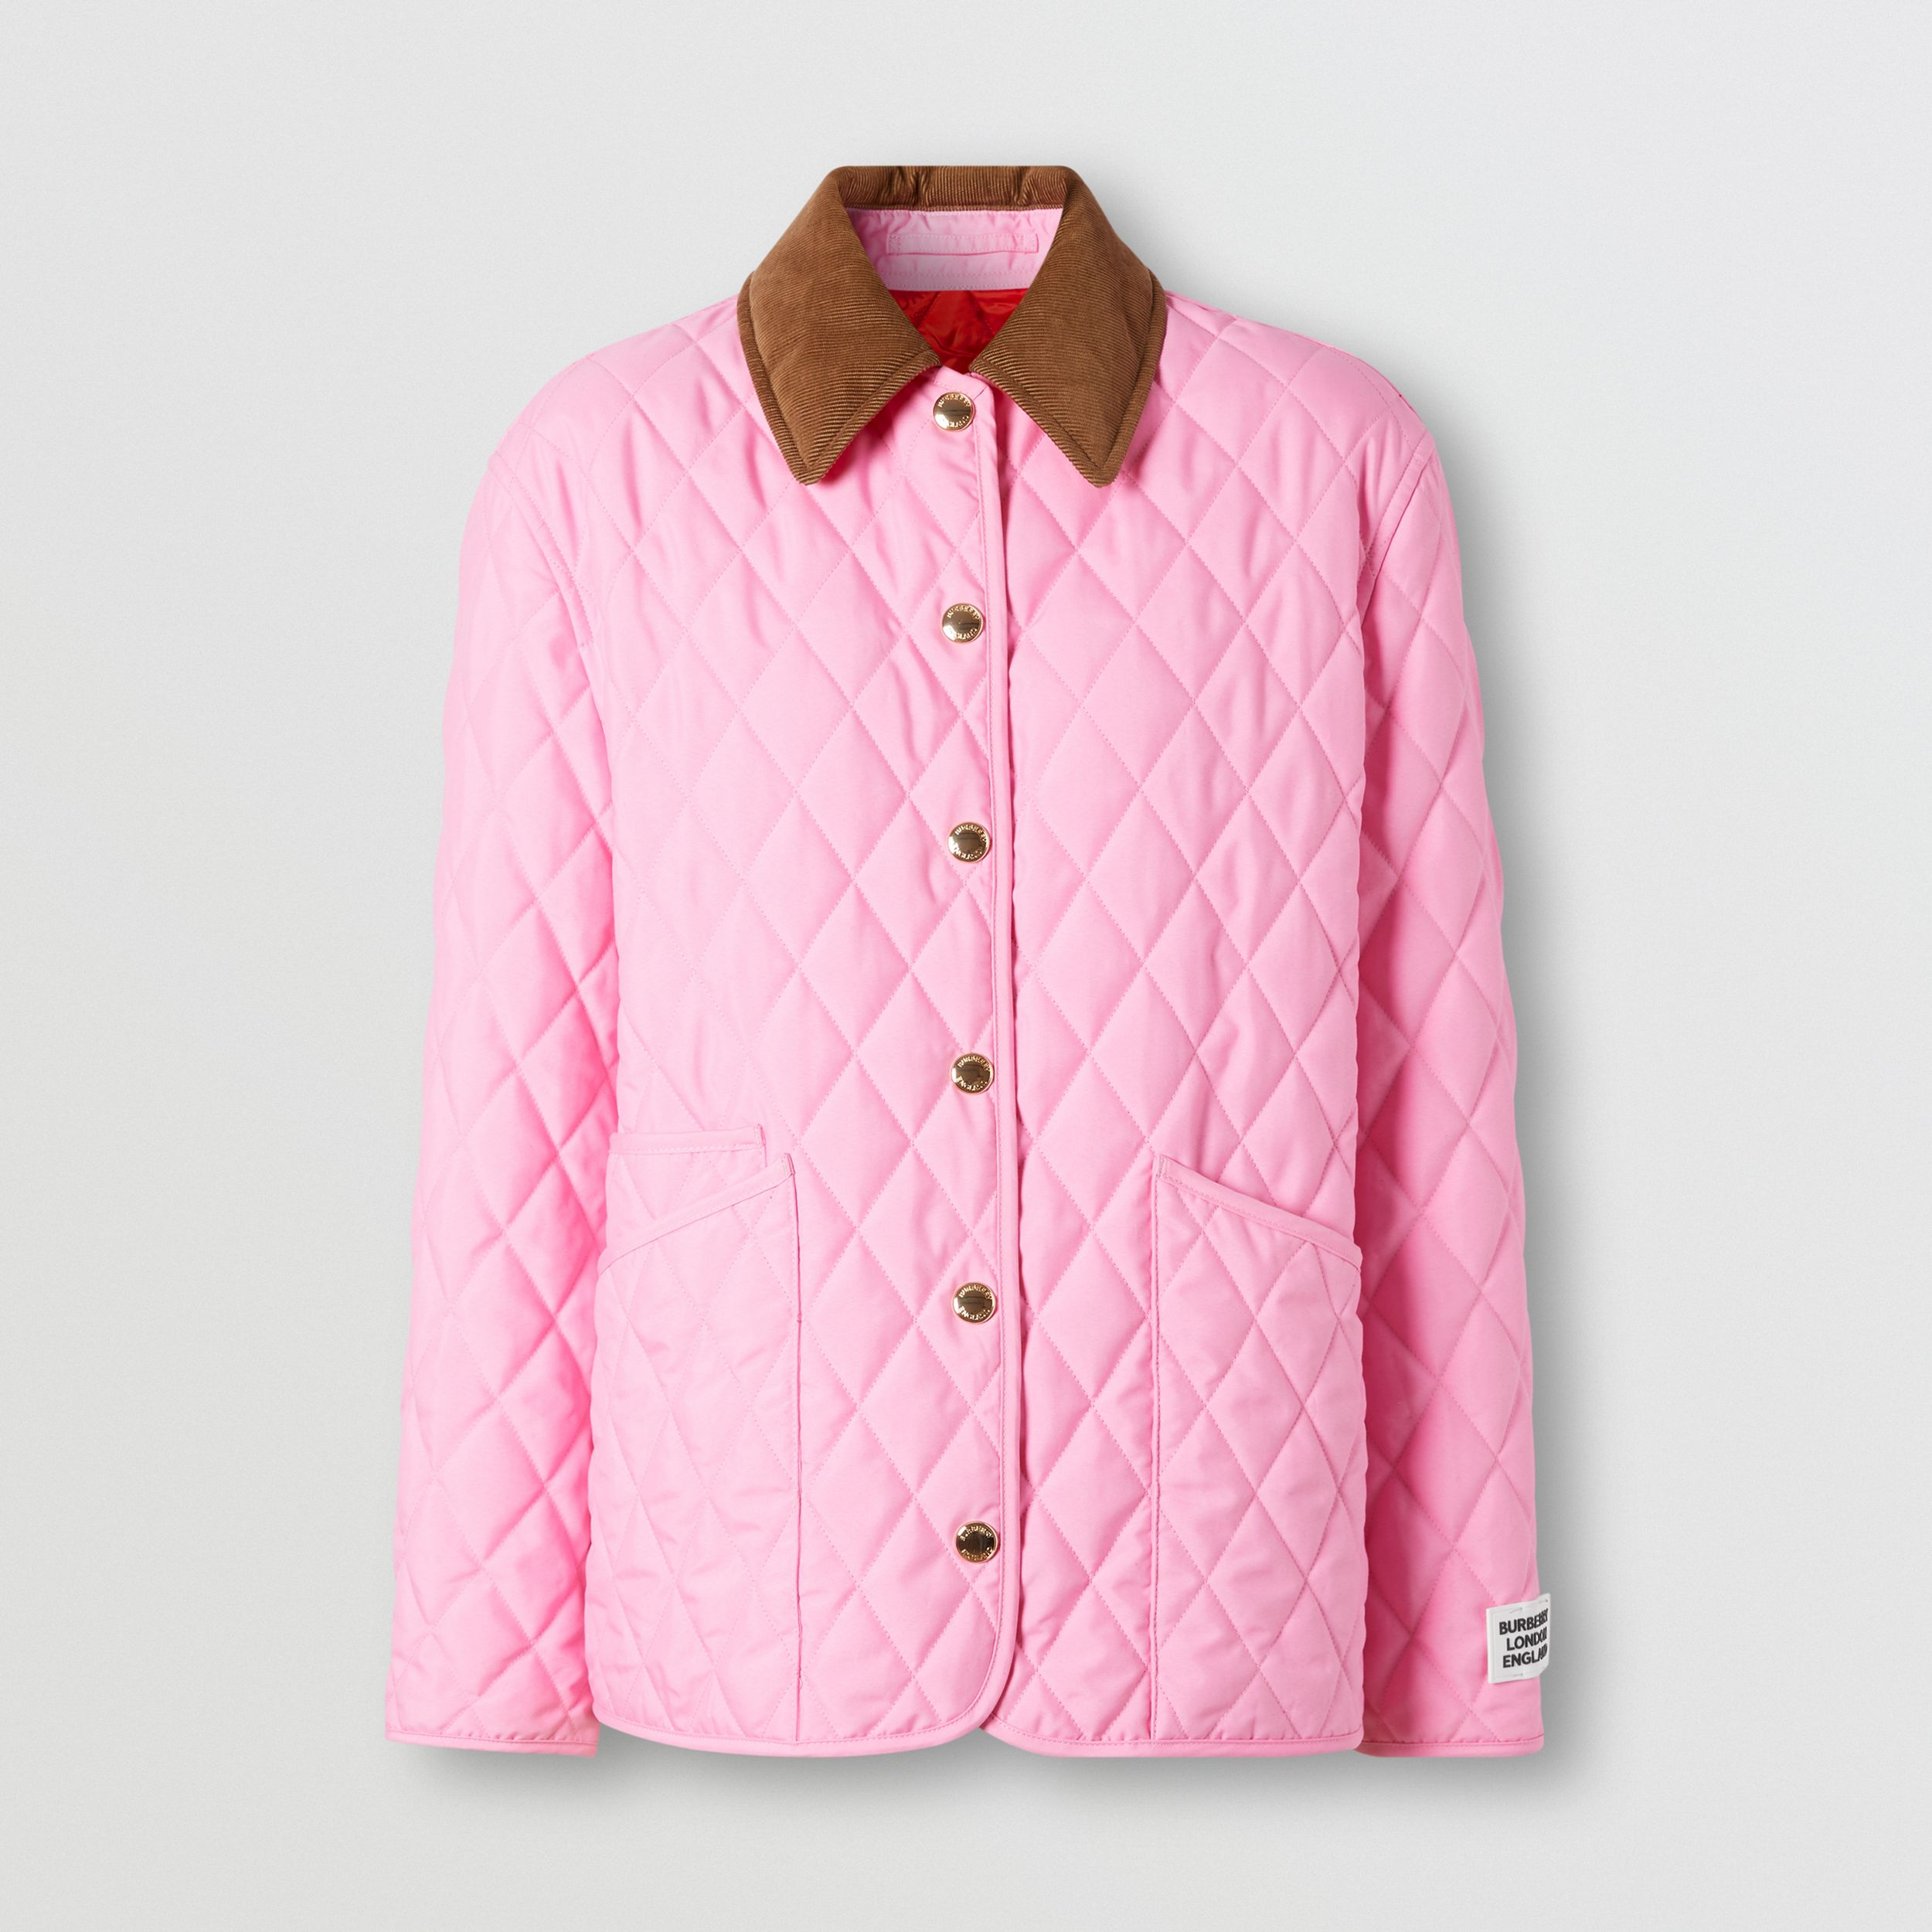 Corduroy Collar Diamond Quilted Jacket in Bubblegum Pink - Women | Burberry - 4